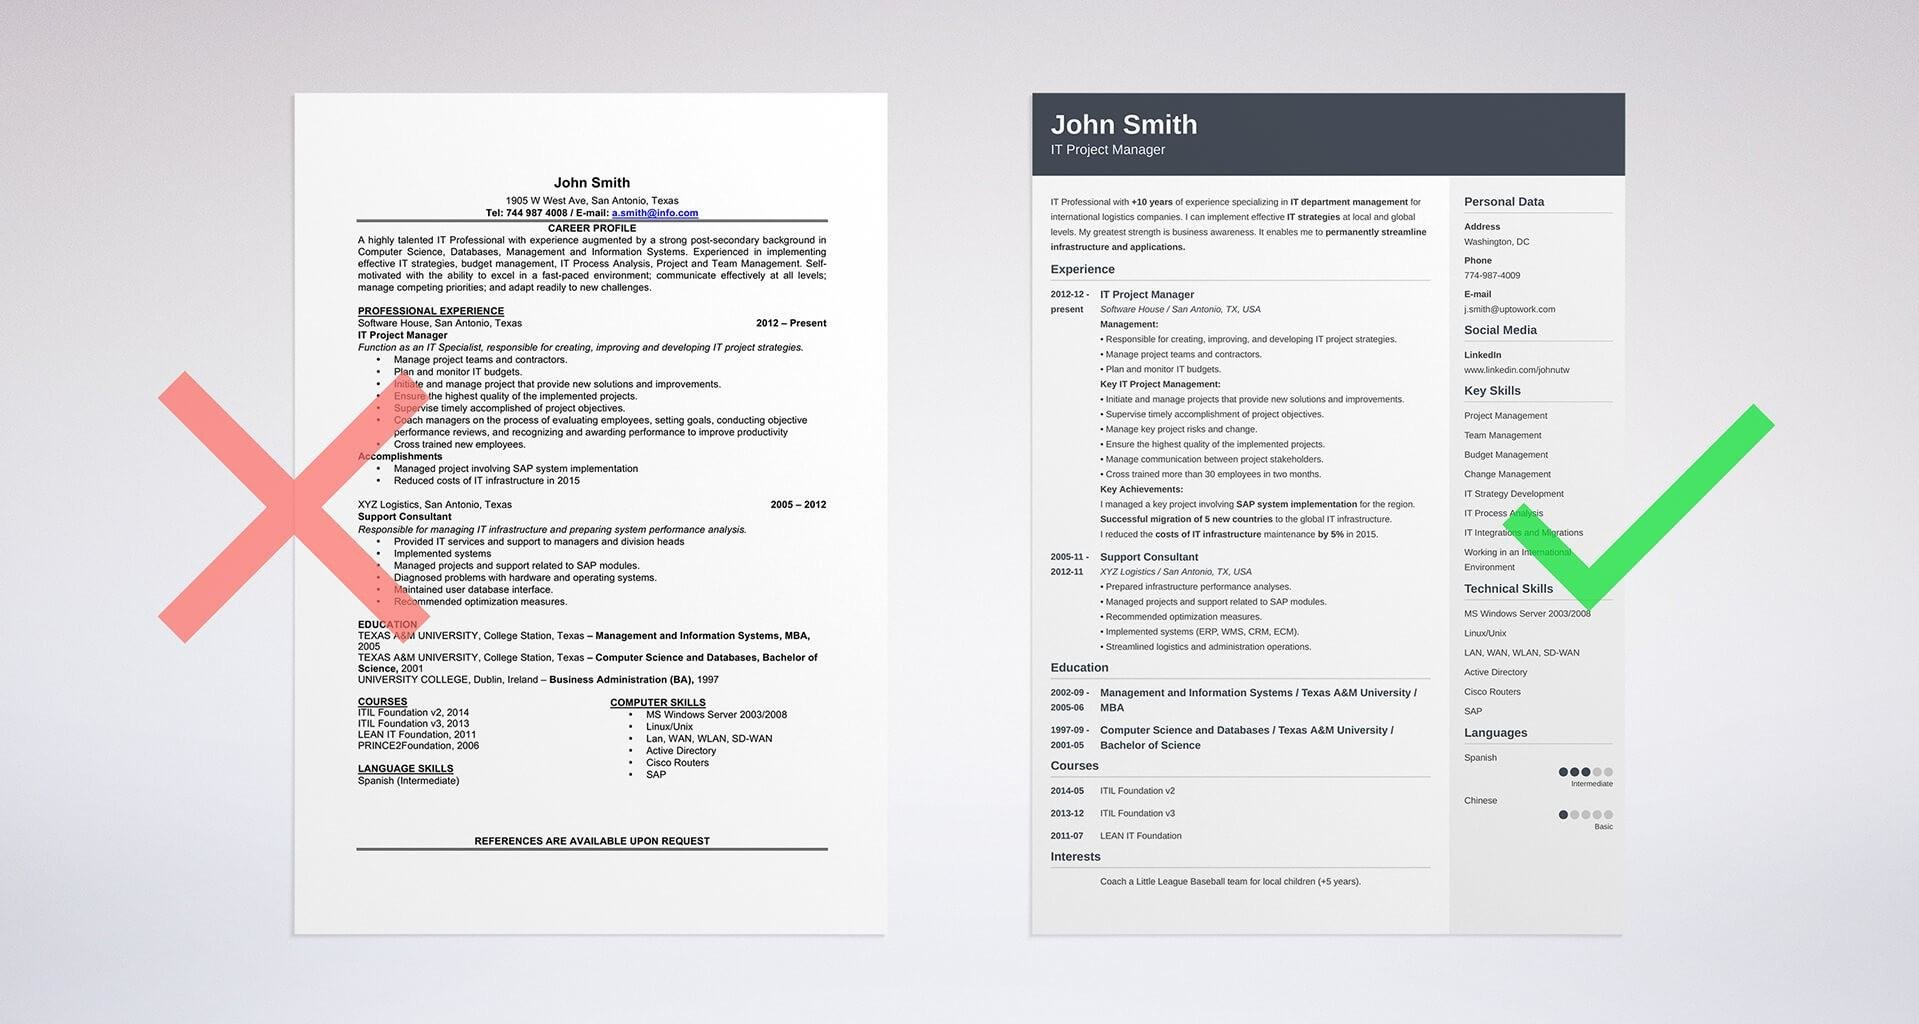 resume objective examples career objectives for all jobs statement it makeover zoom Resume Resume Objective Statement